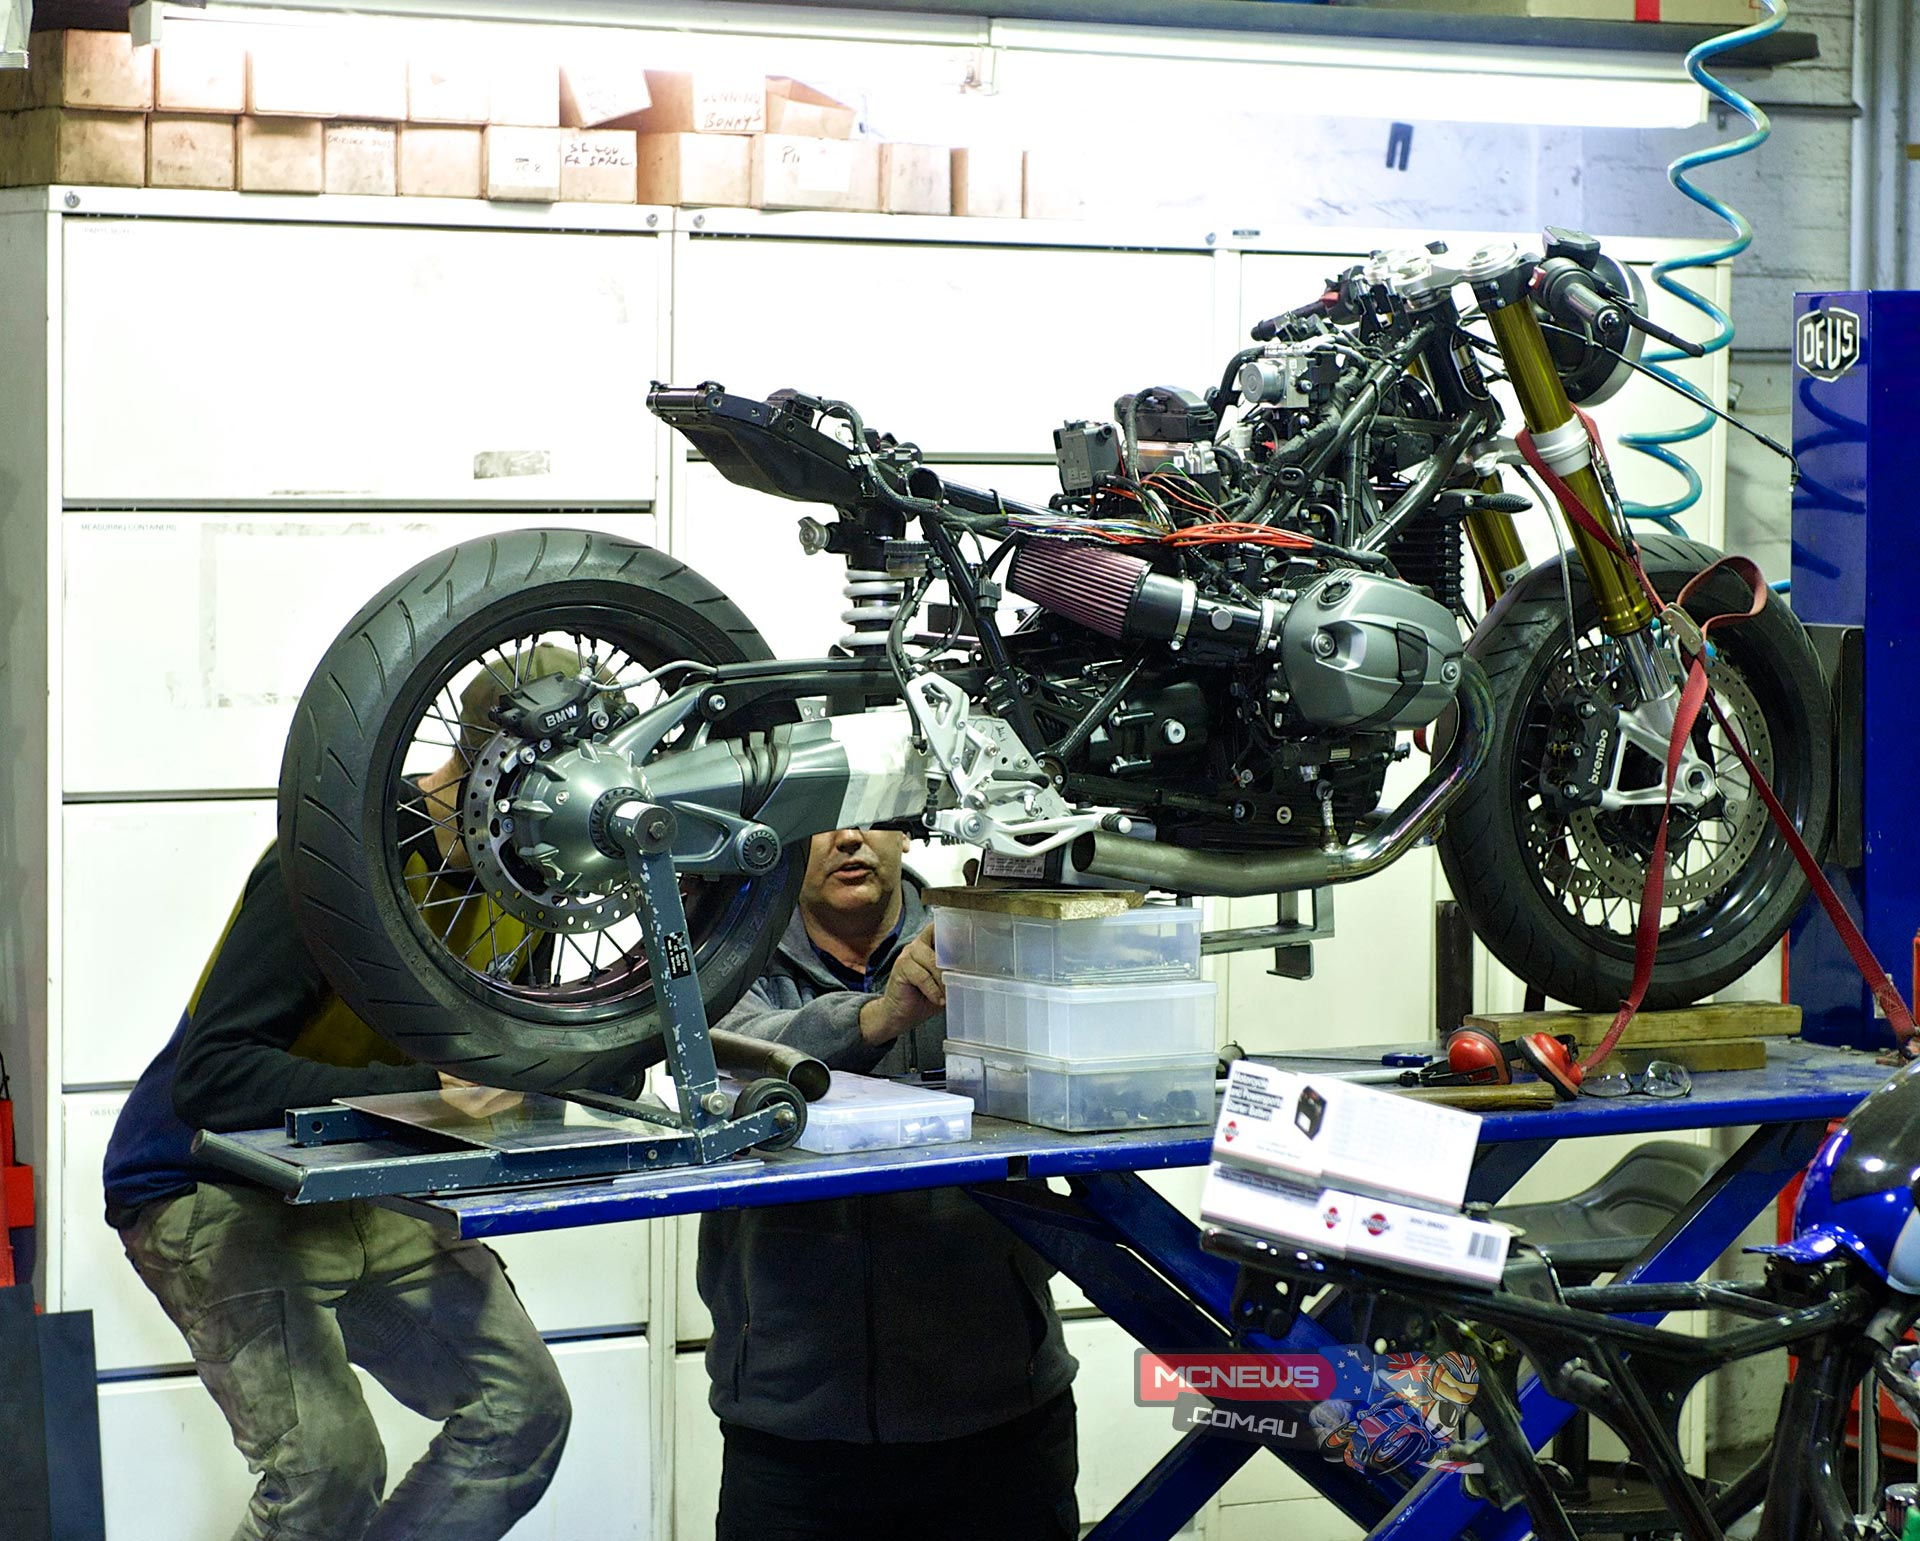 Deus BMW R nineT Takes Shape